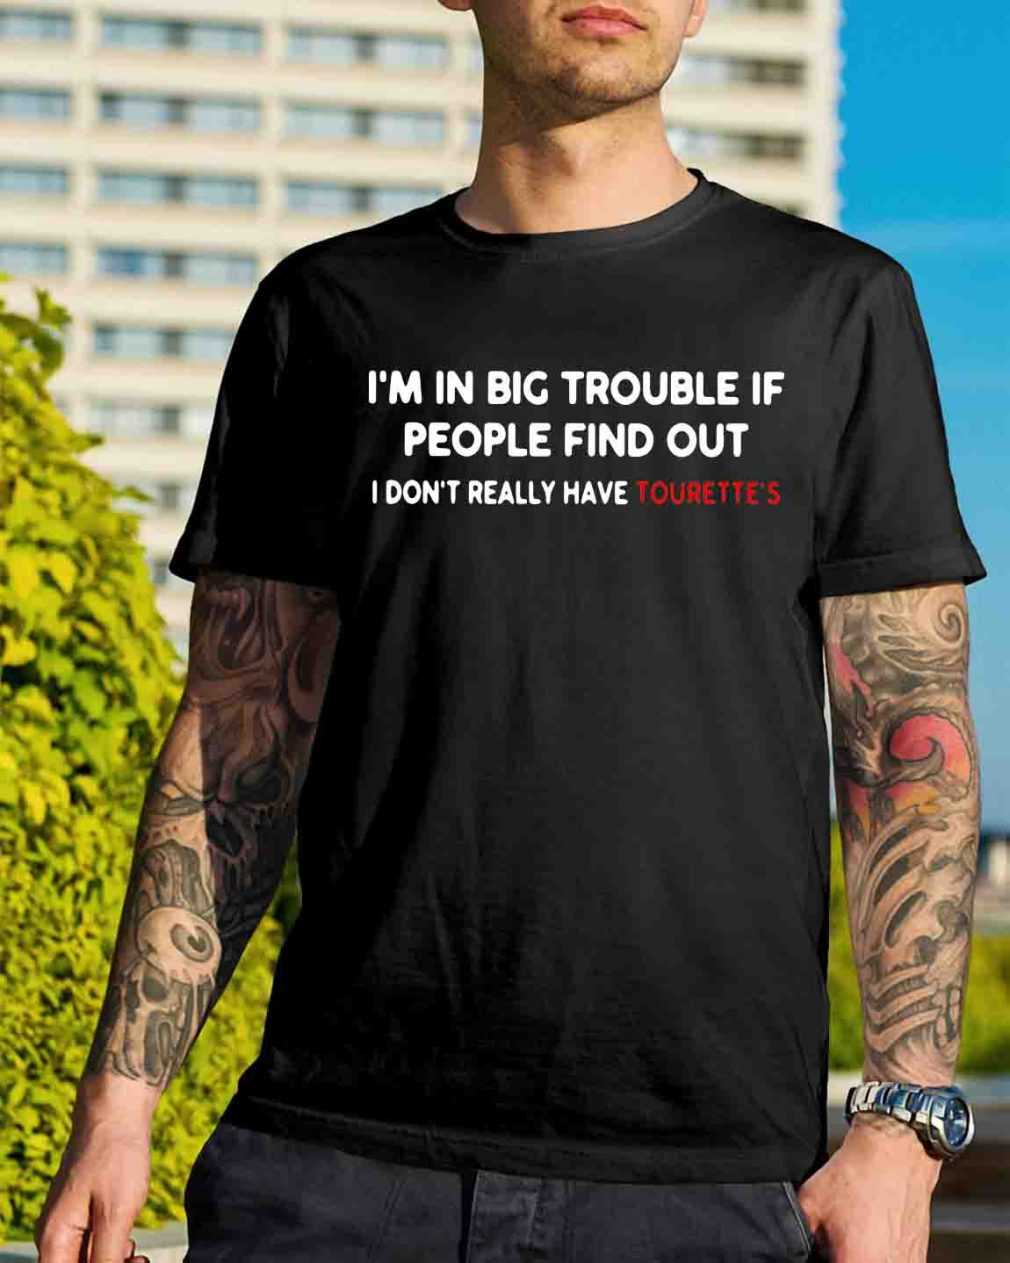 I'm in big trouble if people find out I don't really have tourette's shirt